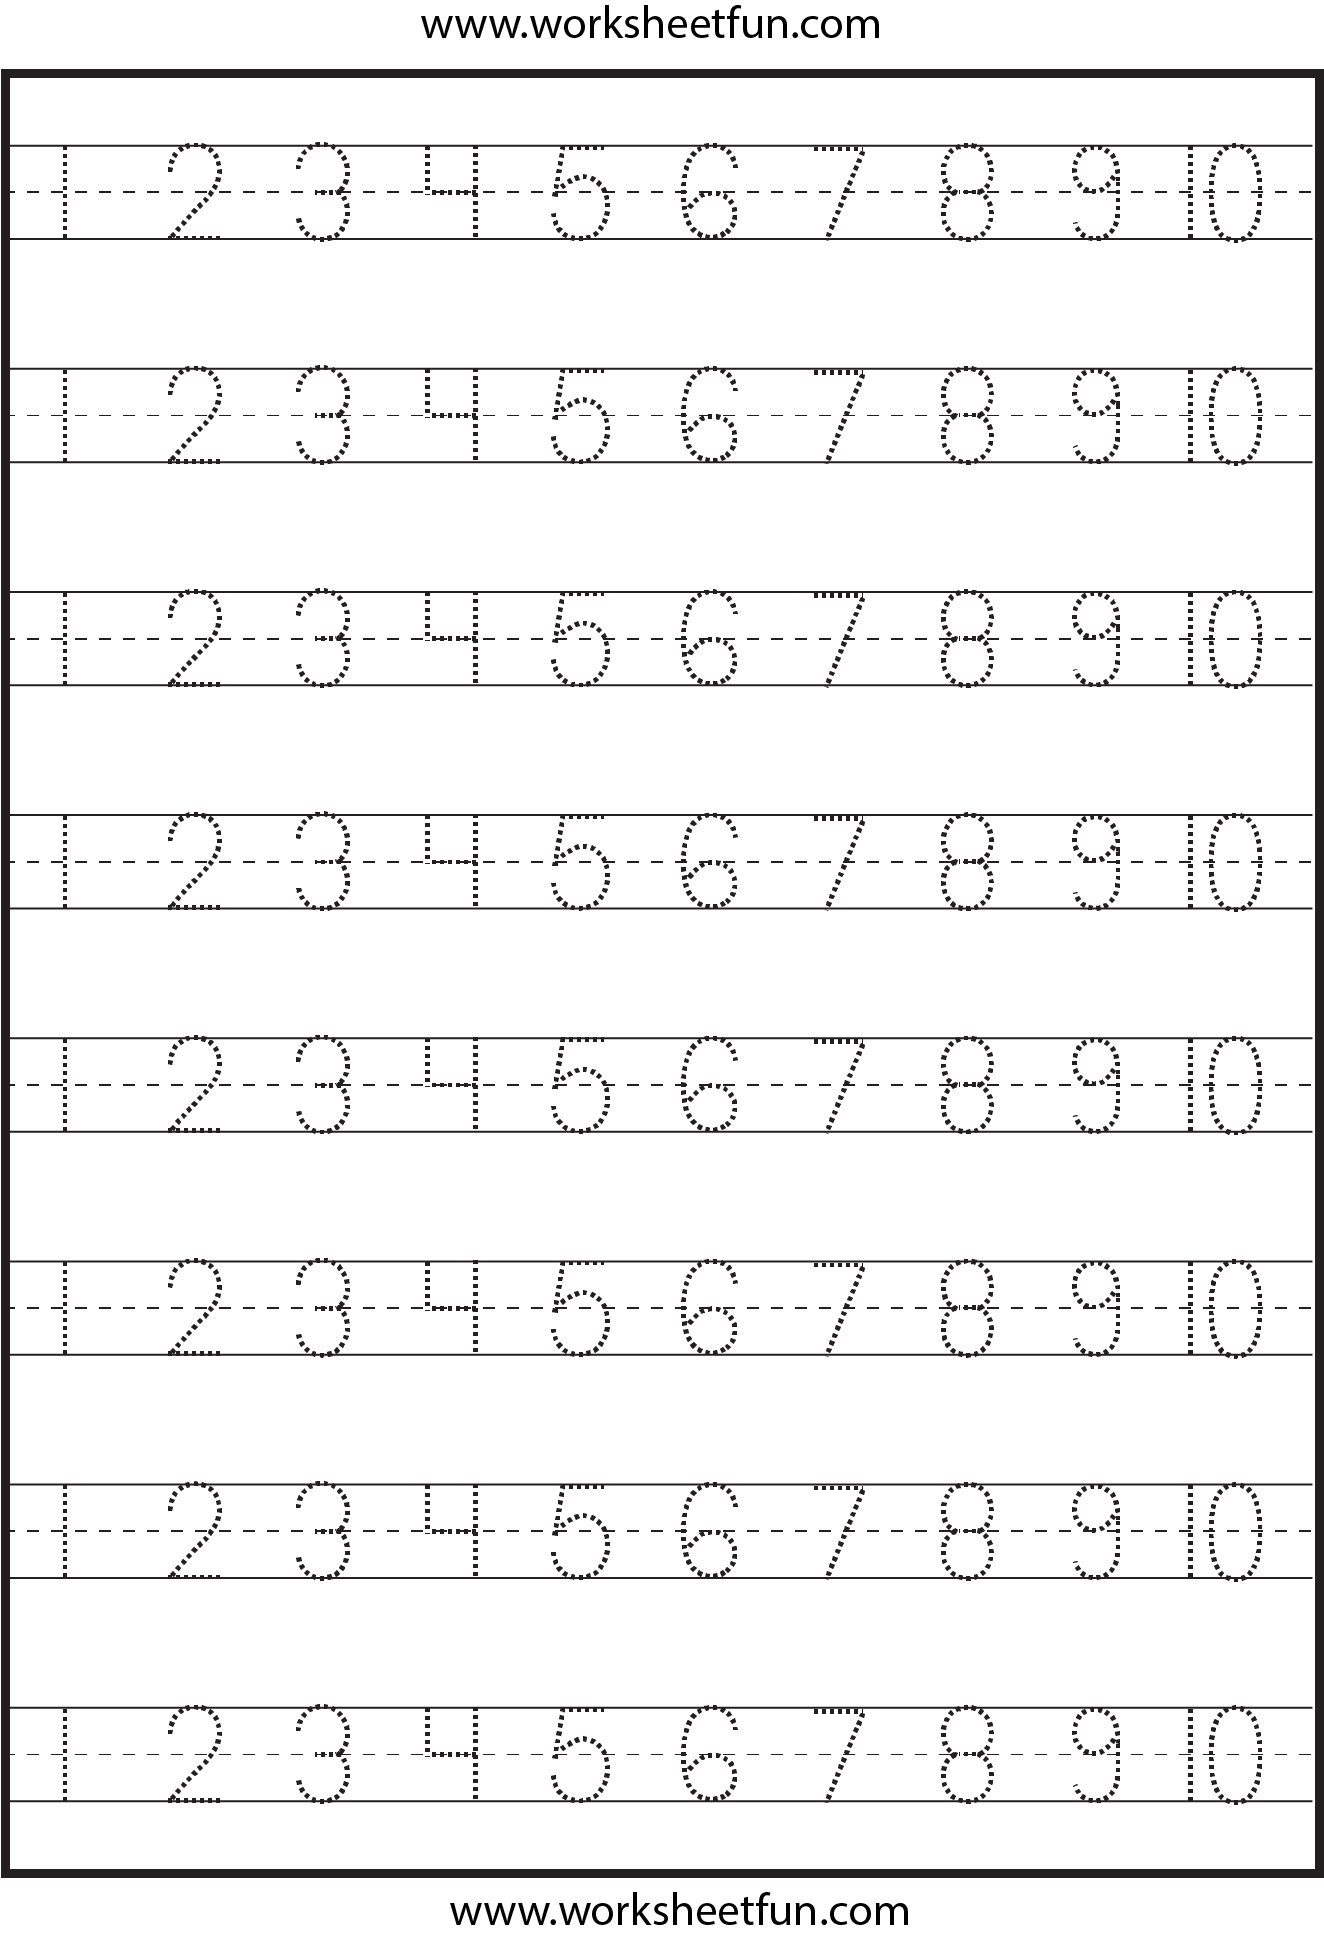 worksheet Number 10 Worksheets number tracing 1 10 worksheet free printable worksheets tracing